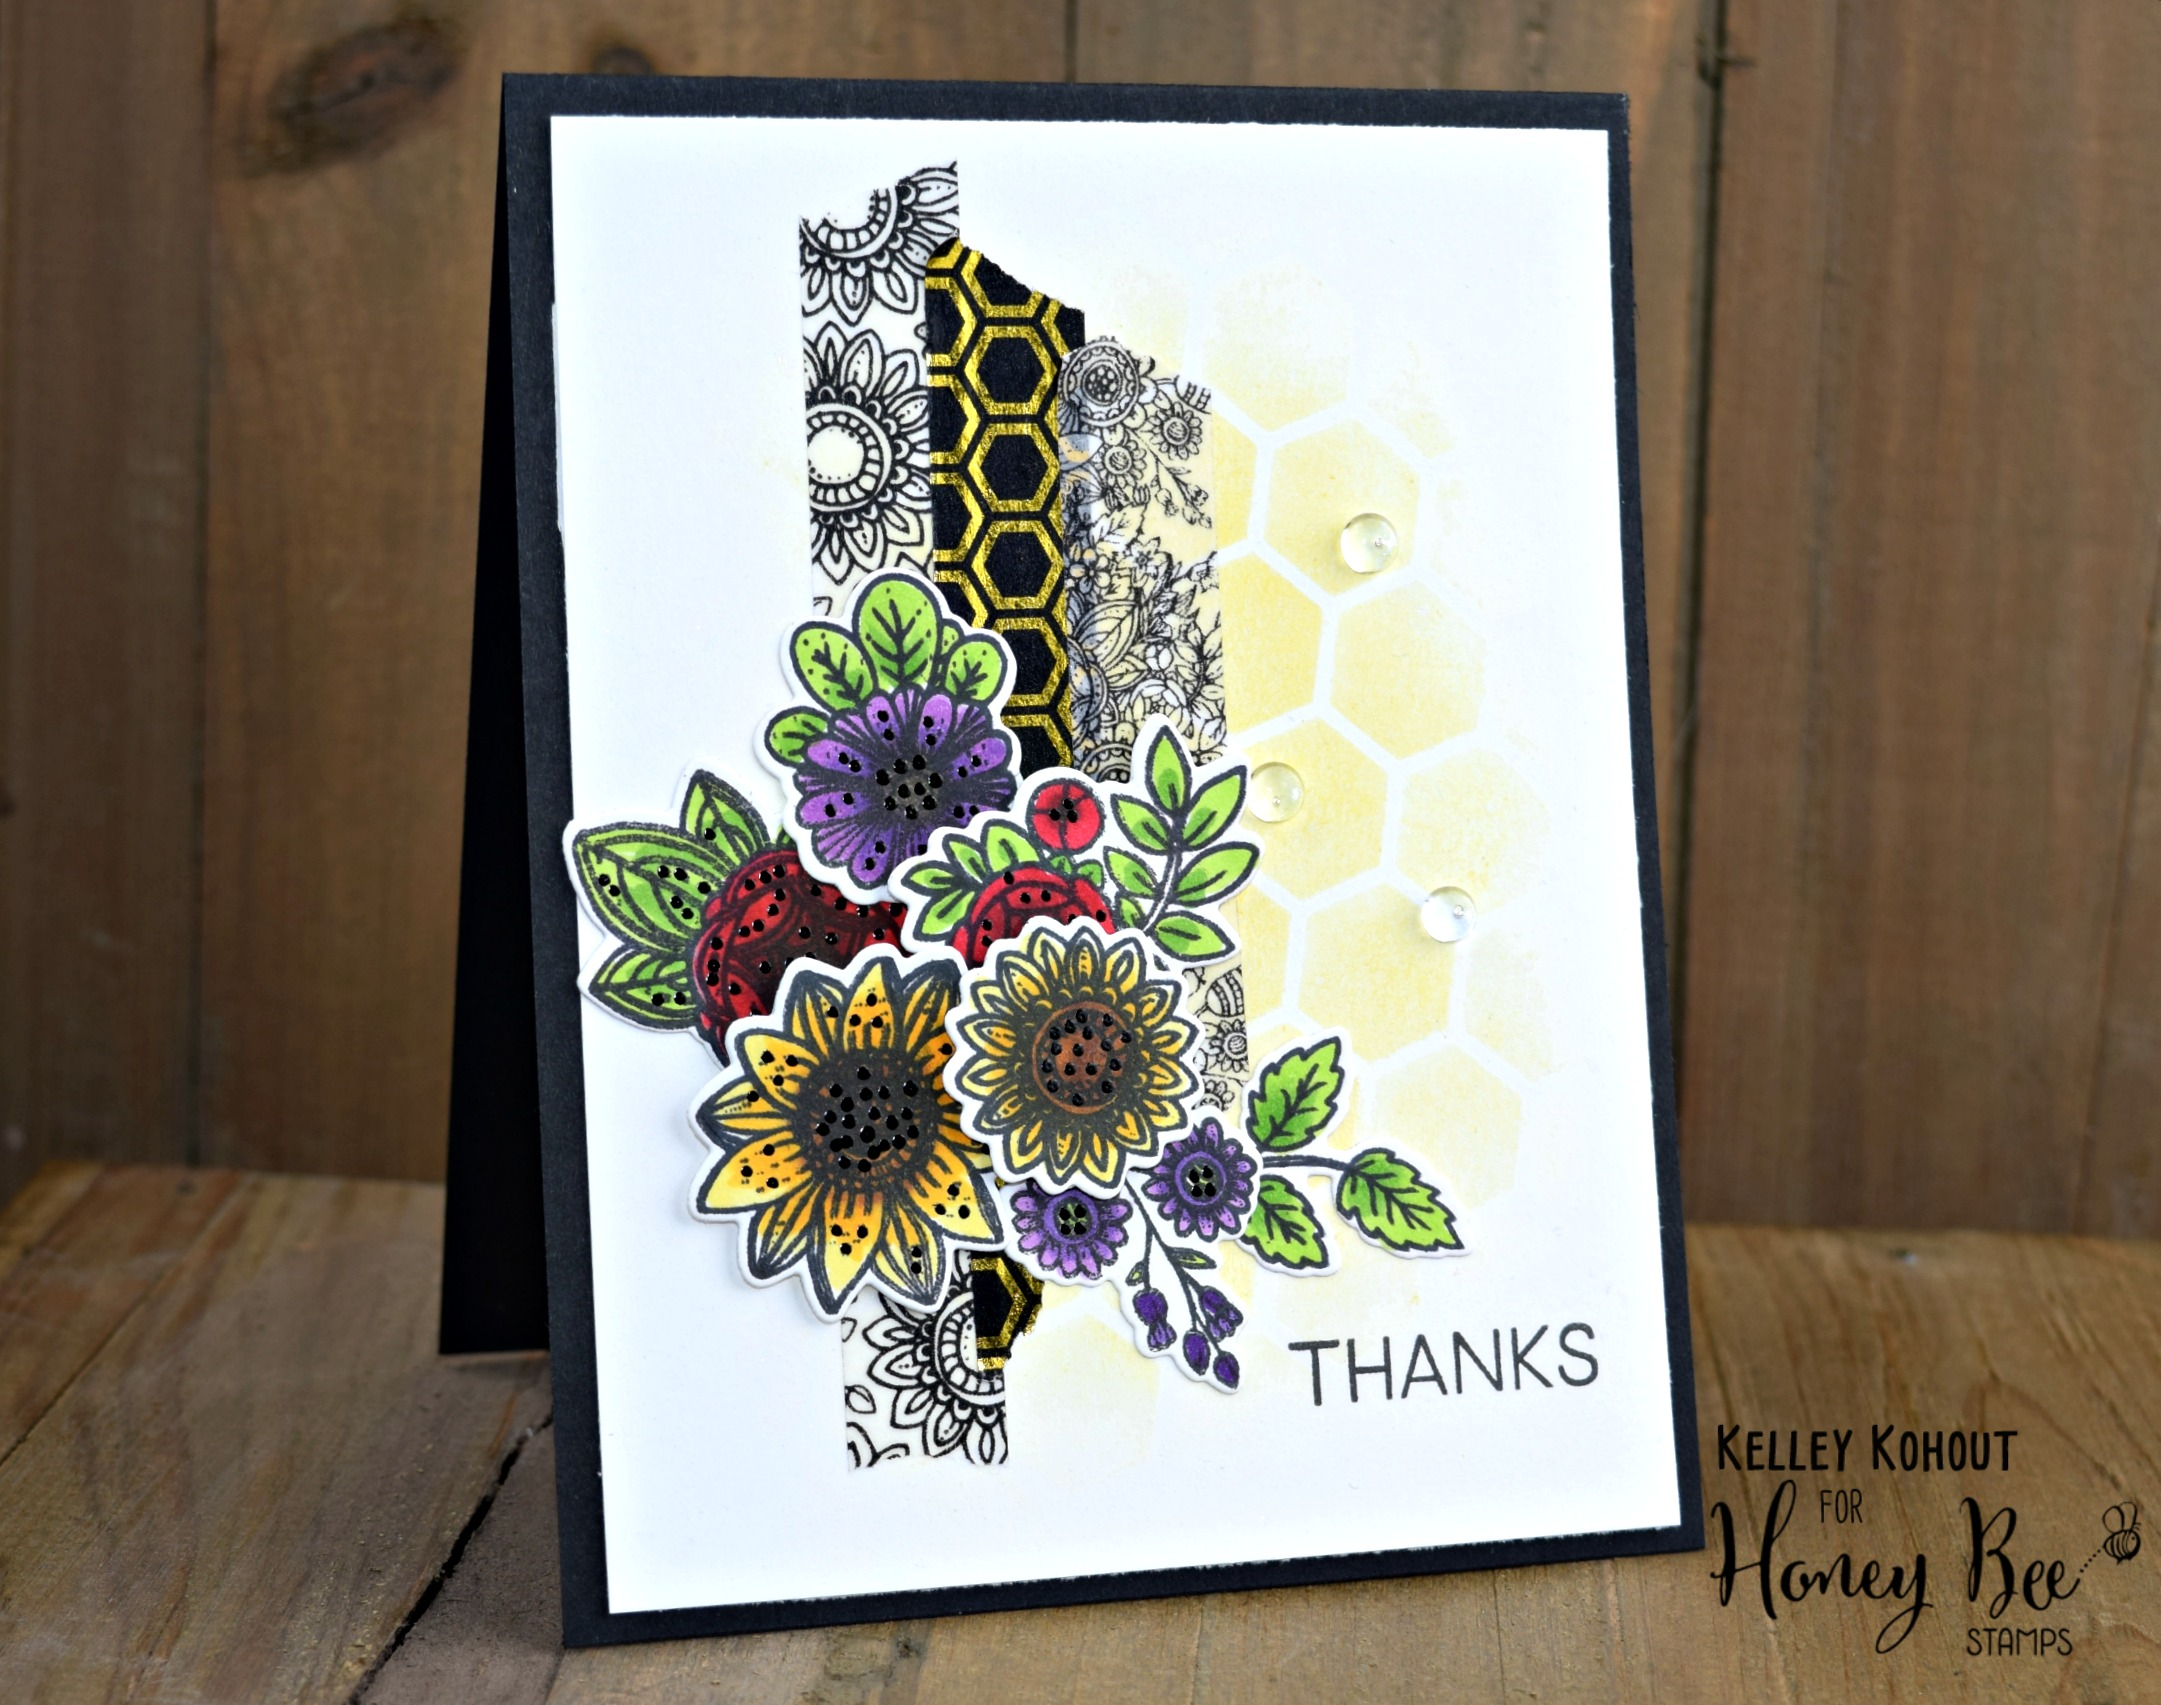 Introduction to Honey Bee Stamps Exclusive Washi Tape & a Card!